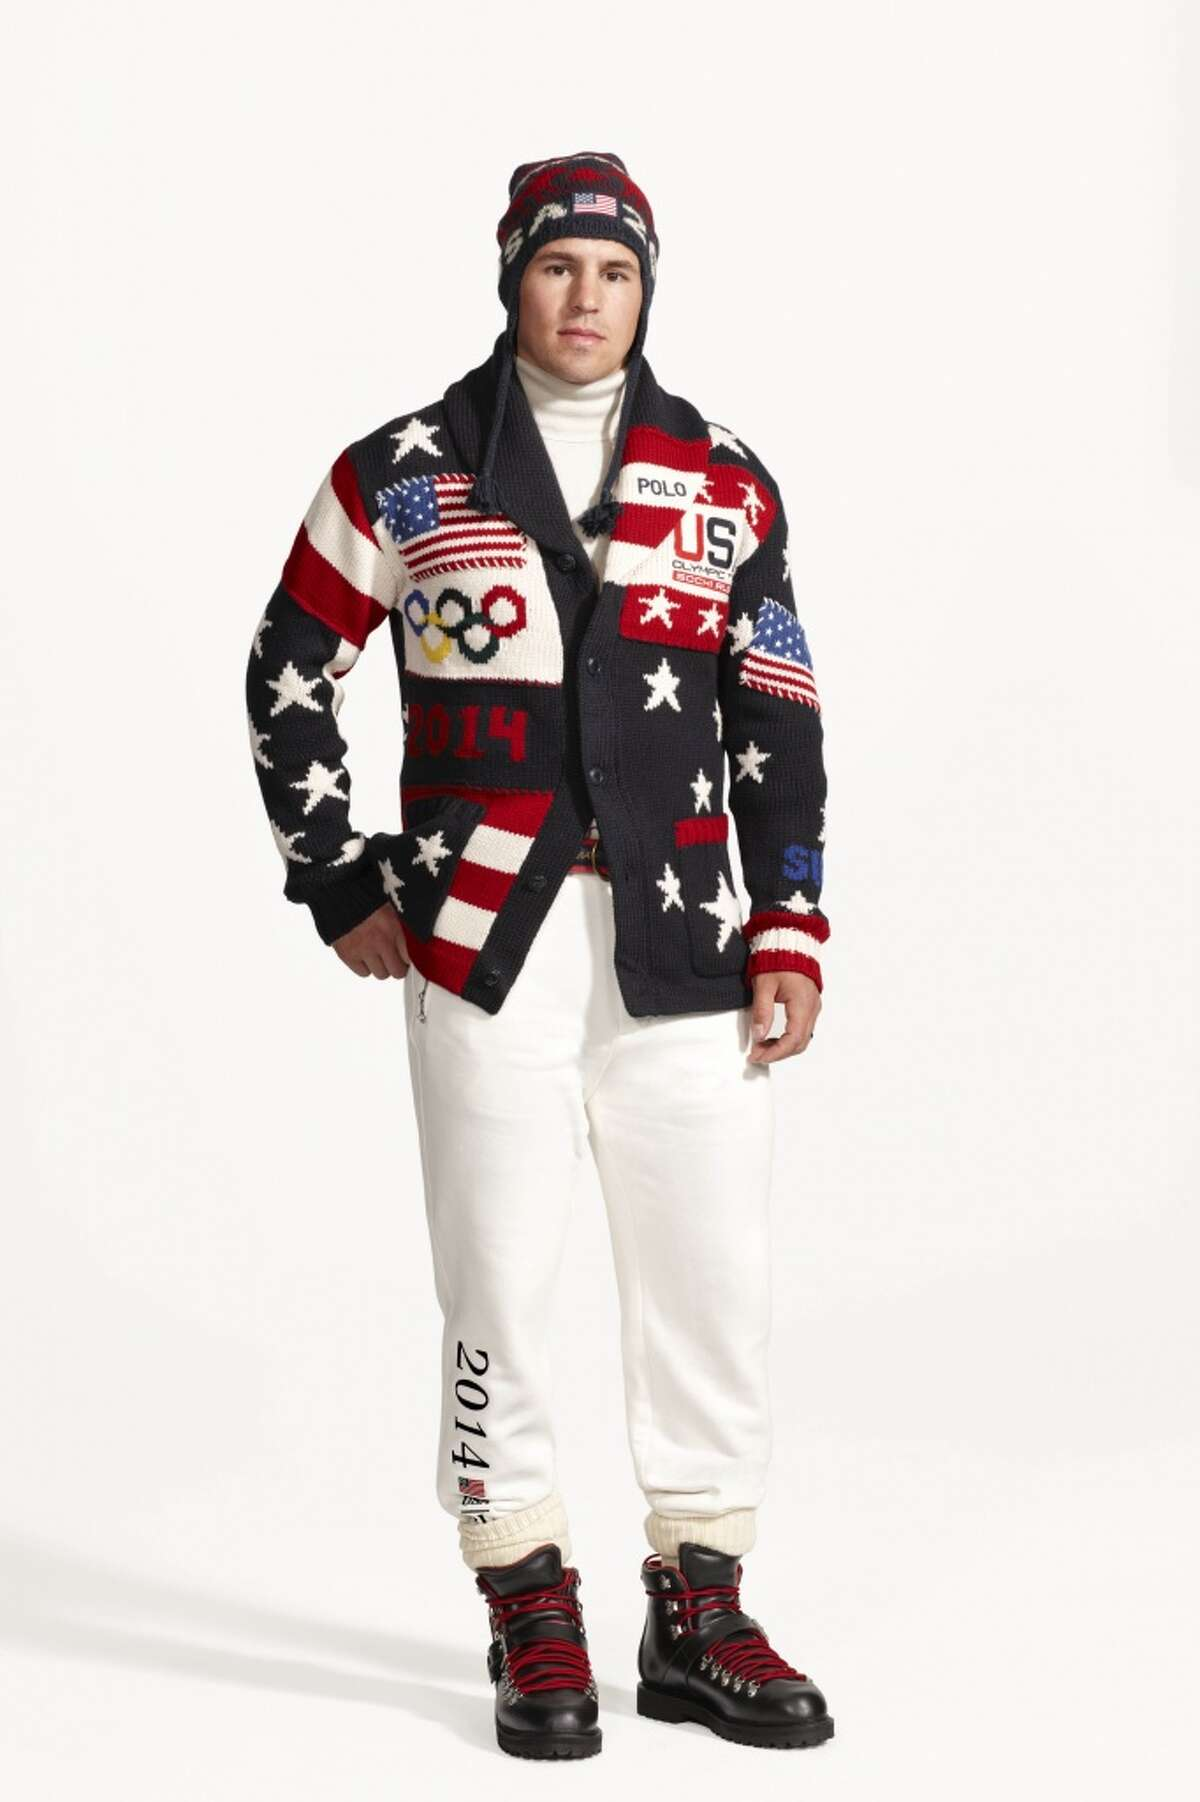 This product image released by Ralph Lauren shows American hockey player Zach Parise wearing the official uniform for Team USA to be worn at the opening ceremony for the 2014 Winter Olympic games in Sochi, Russia. Every article of clothing made by Ralph Lauren for the U.S. Winter Olympic athletes in Sochi, including their opening and closing ceremony uniforms and their Olympic Village gear, has been made by domestic craftsman and manufacturers. (AP Photo/Ralph Lauren)